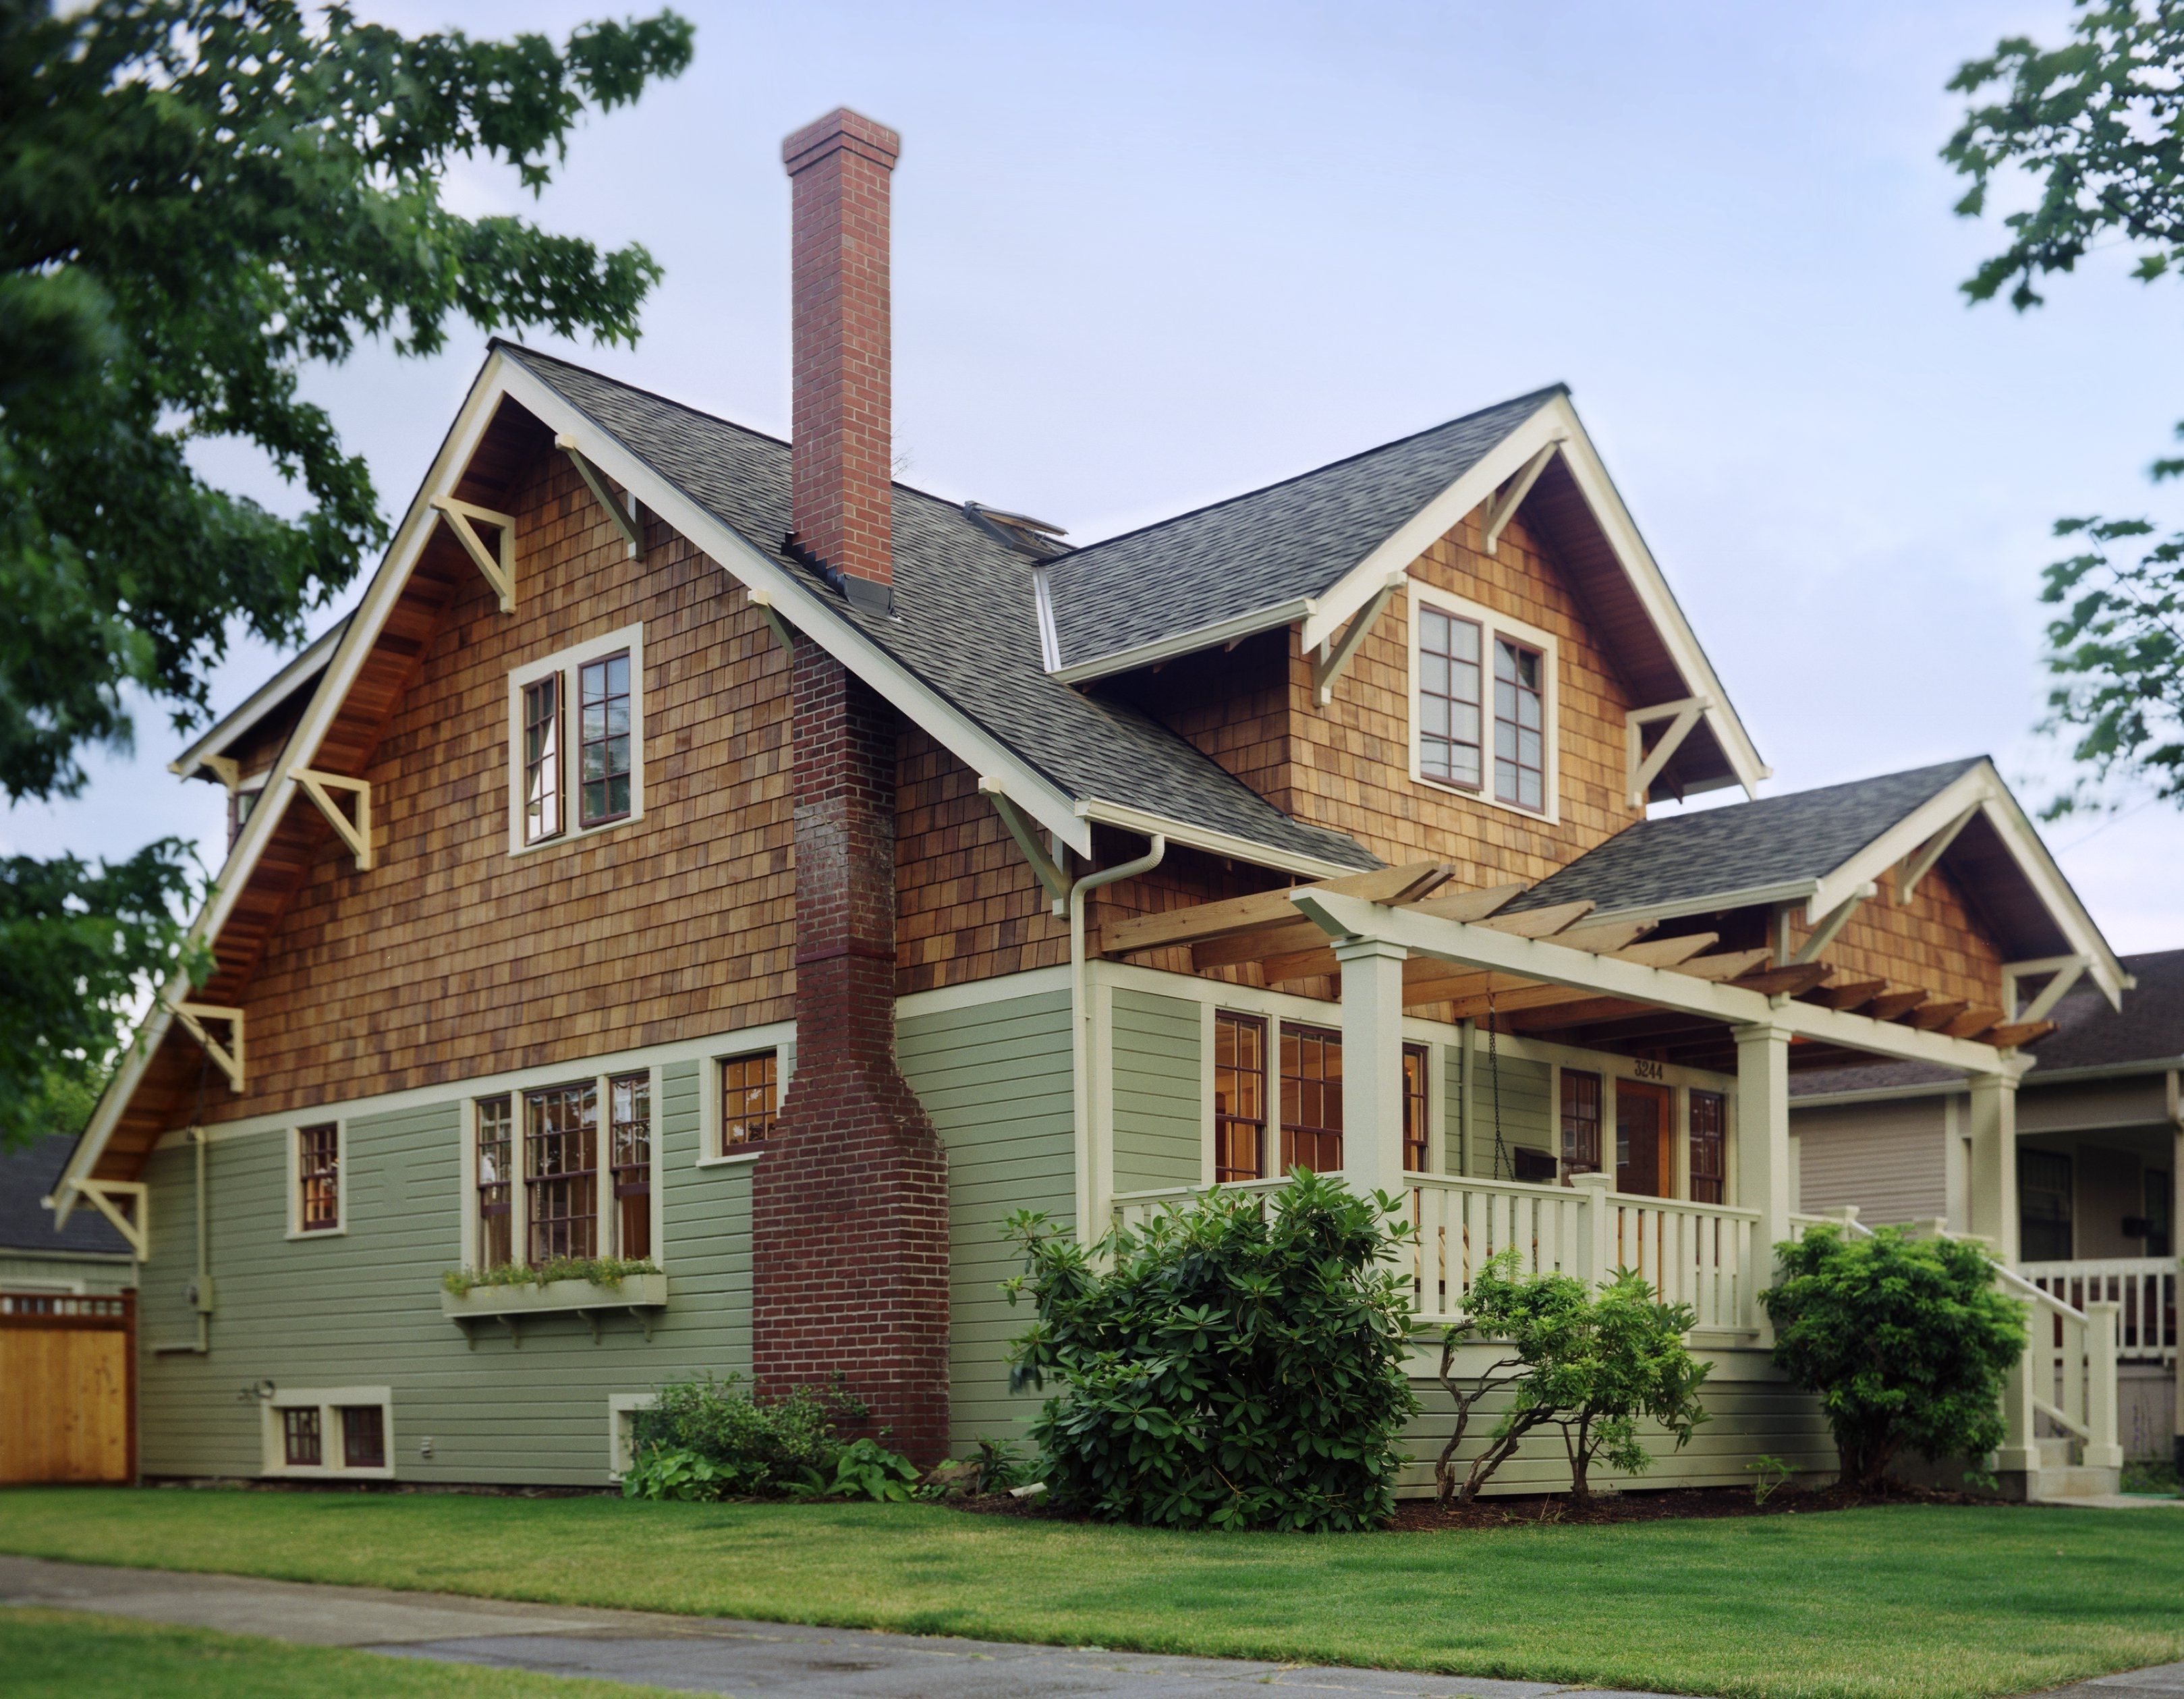 Craftsman Home Plans With Walkout Bat on den home plans, wood home plans, crawl space home plans, porch home plans, lakefront home plans, patio home plans, family room home plans, hillside rustic home plans, flat home plans, yes home plans, dugout home plans, kitchen home plans, poured concrete home plans, office home plans,